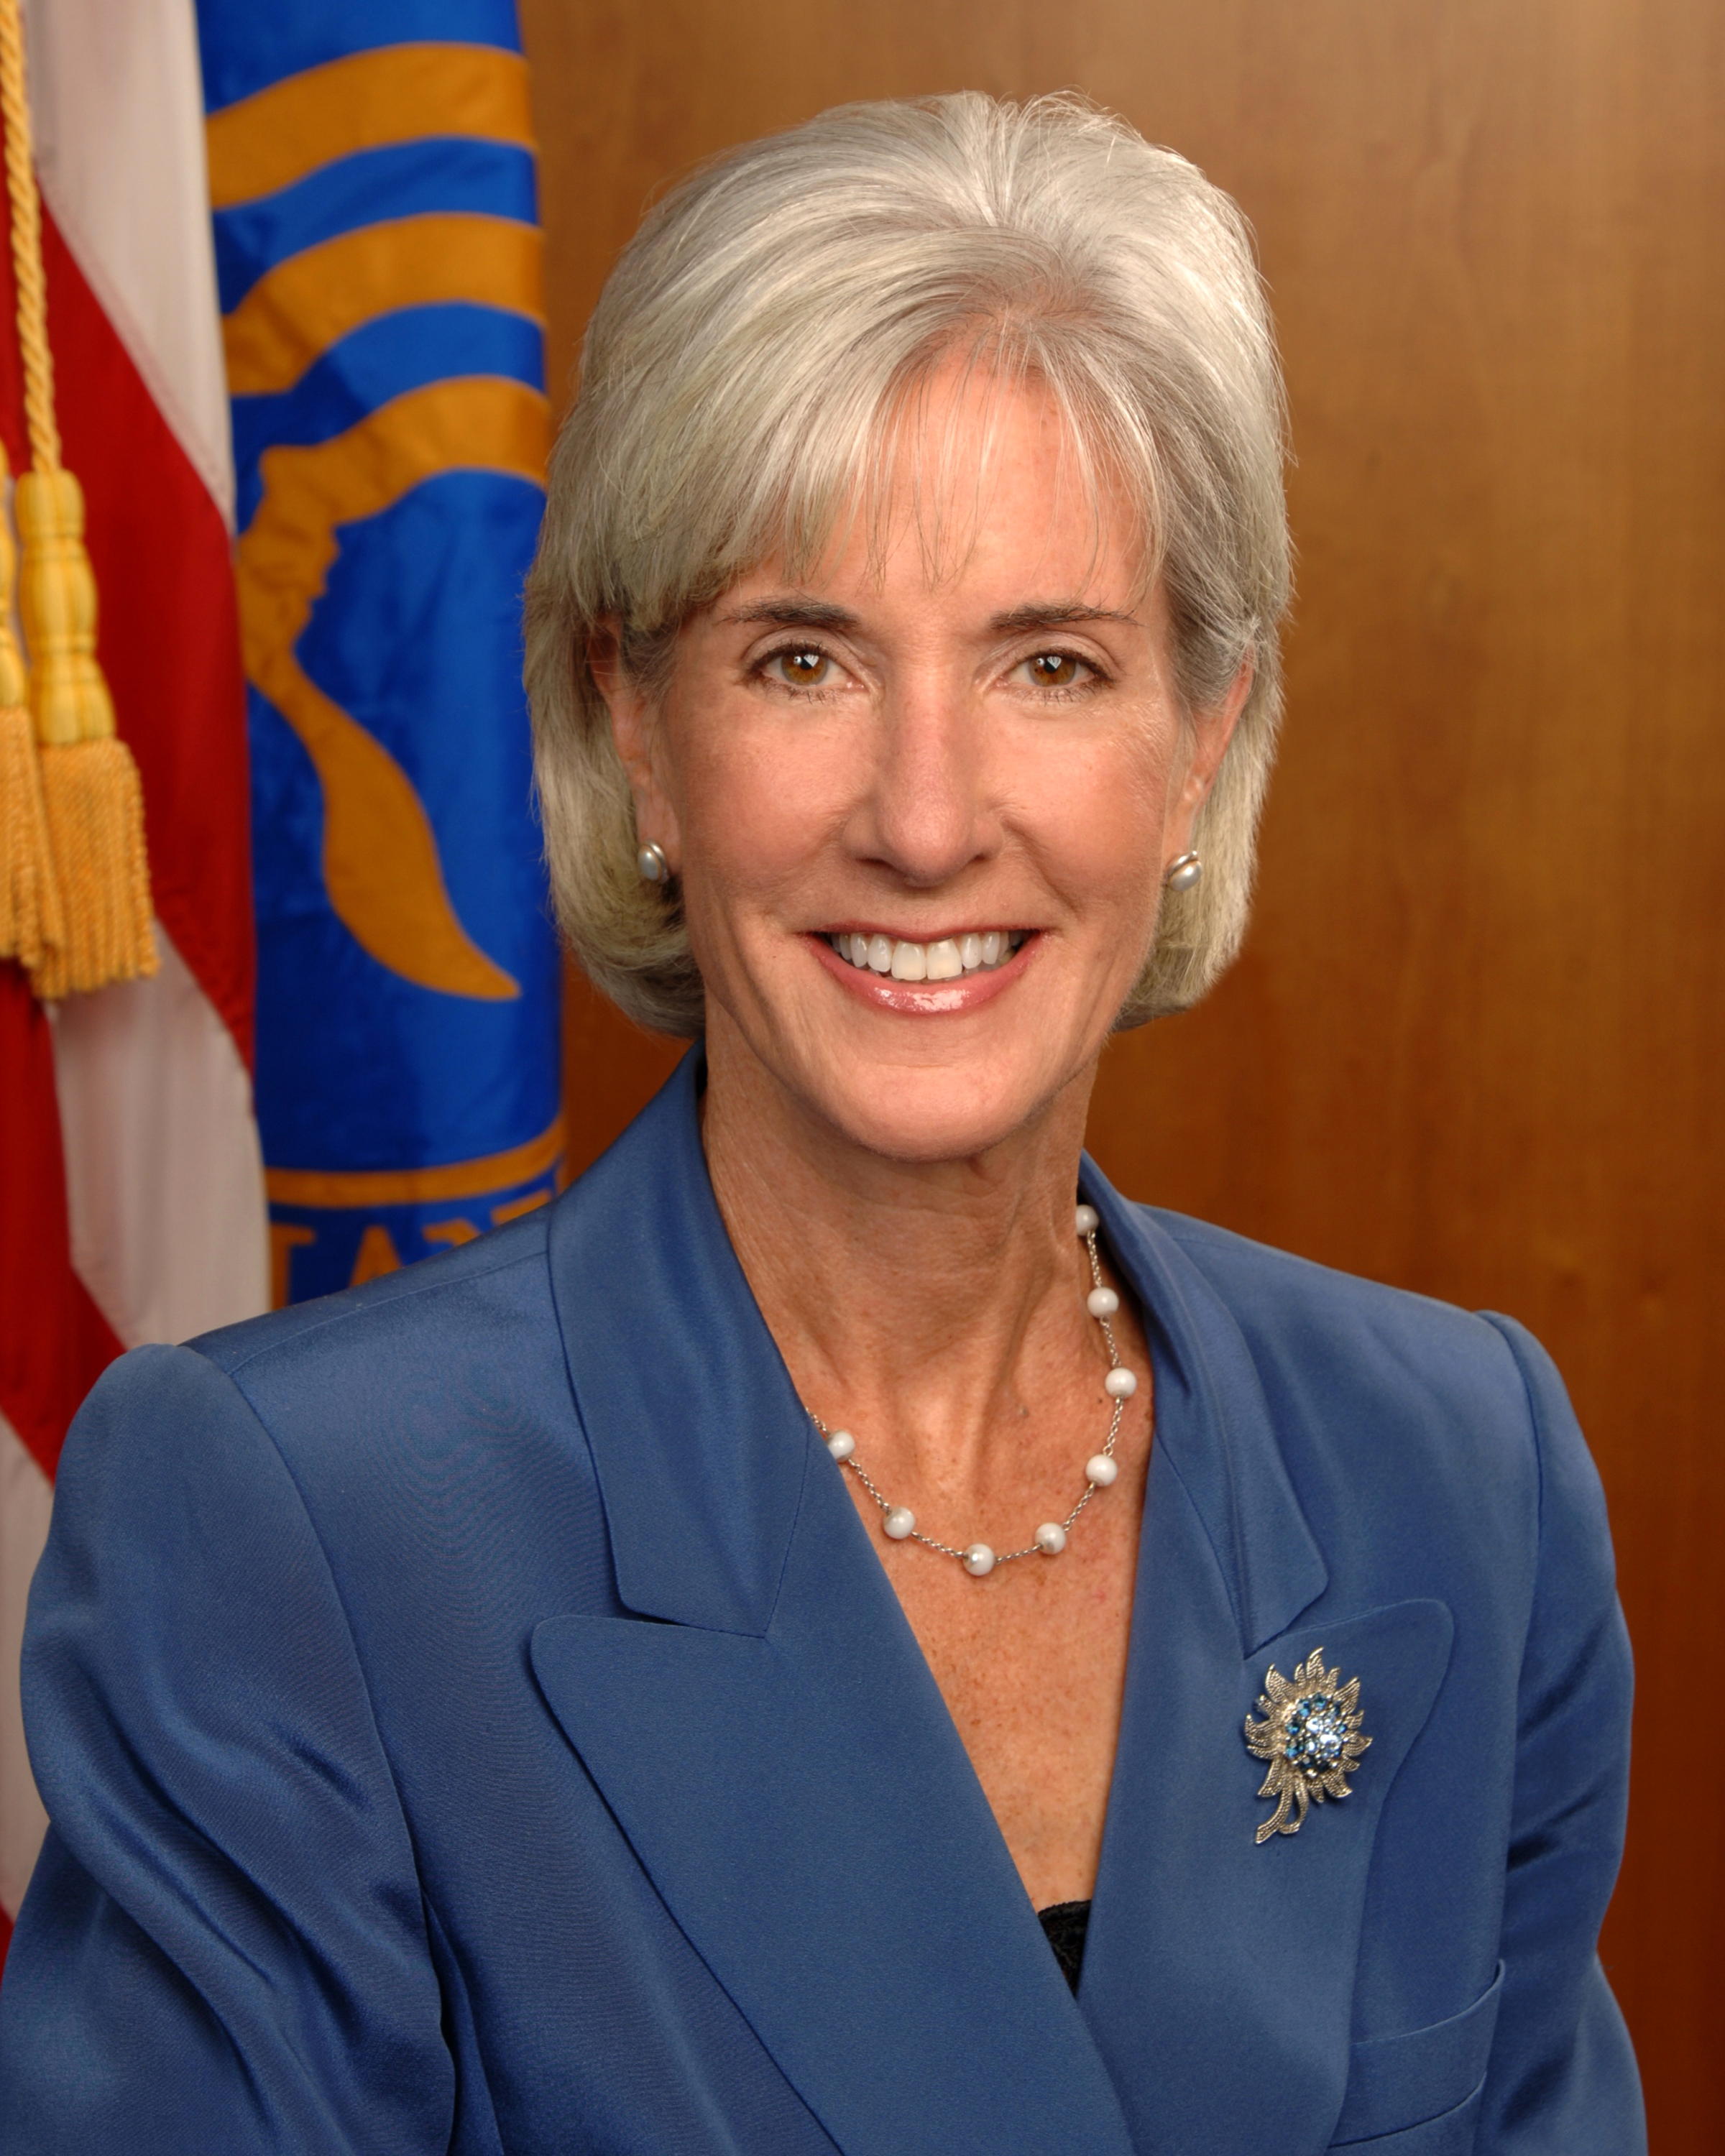 http://upload.wikimedia.org/wikipedia/commons/5/5c/Kathleen_Sebelius_official_portrait.jpg